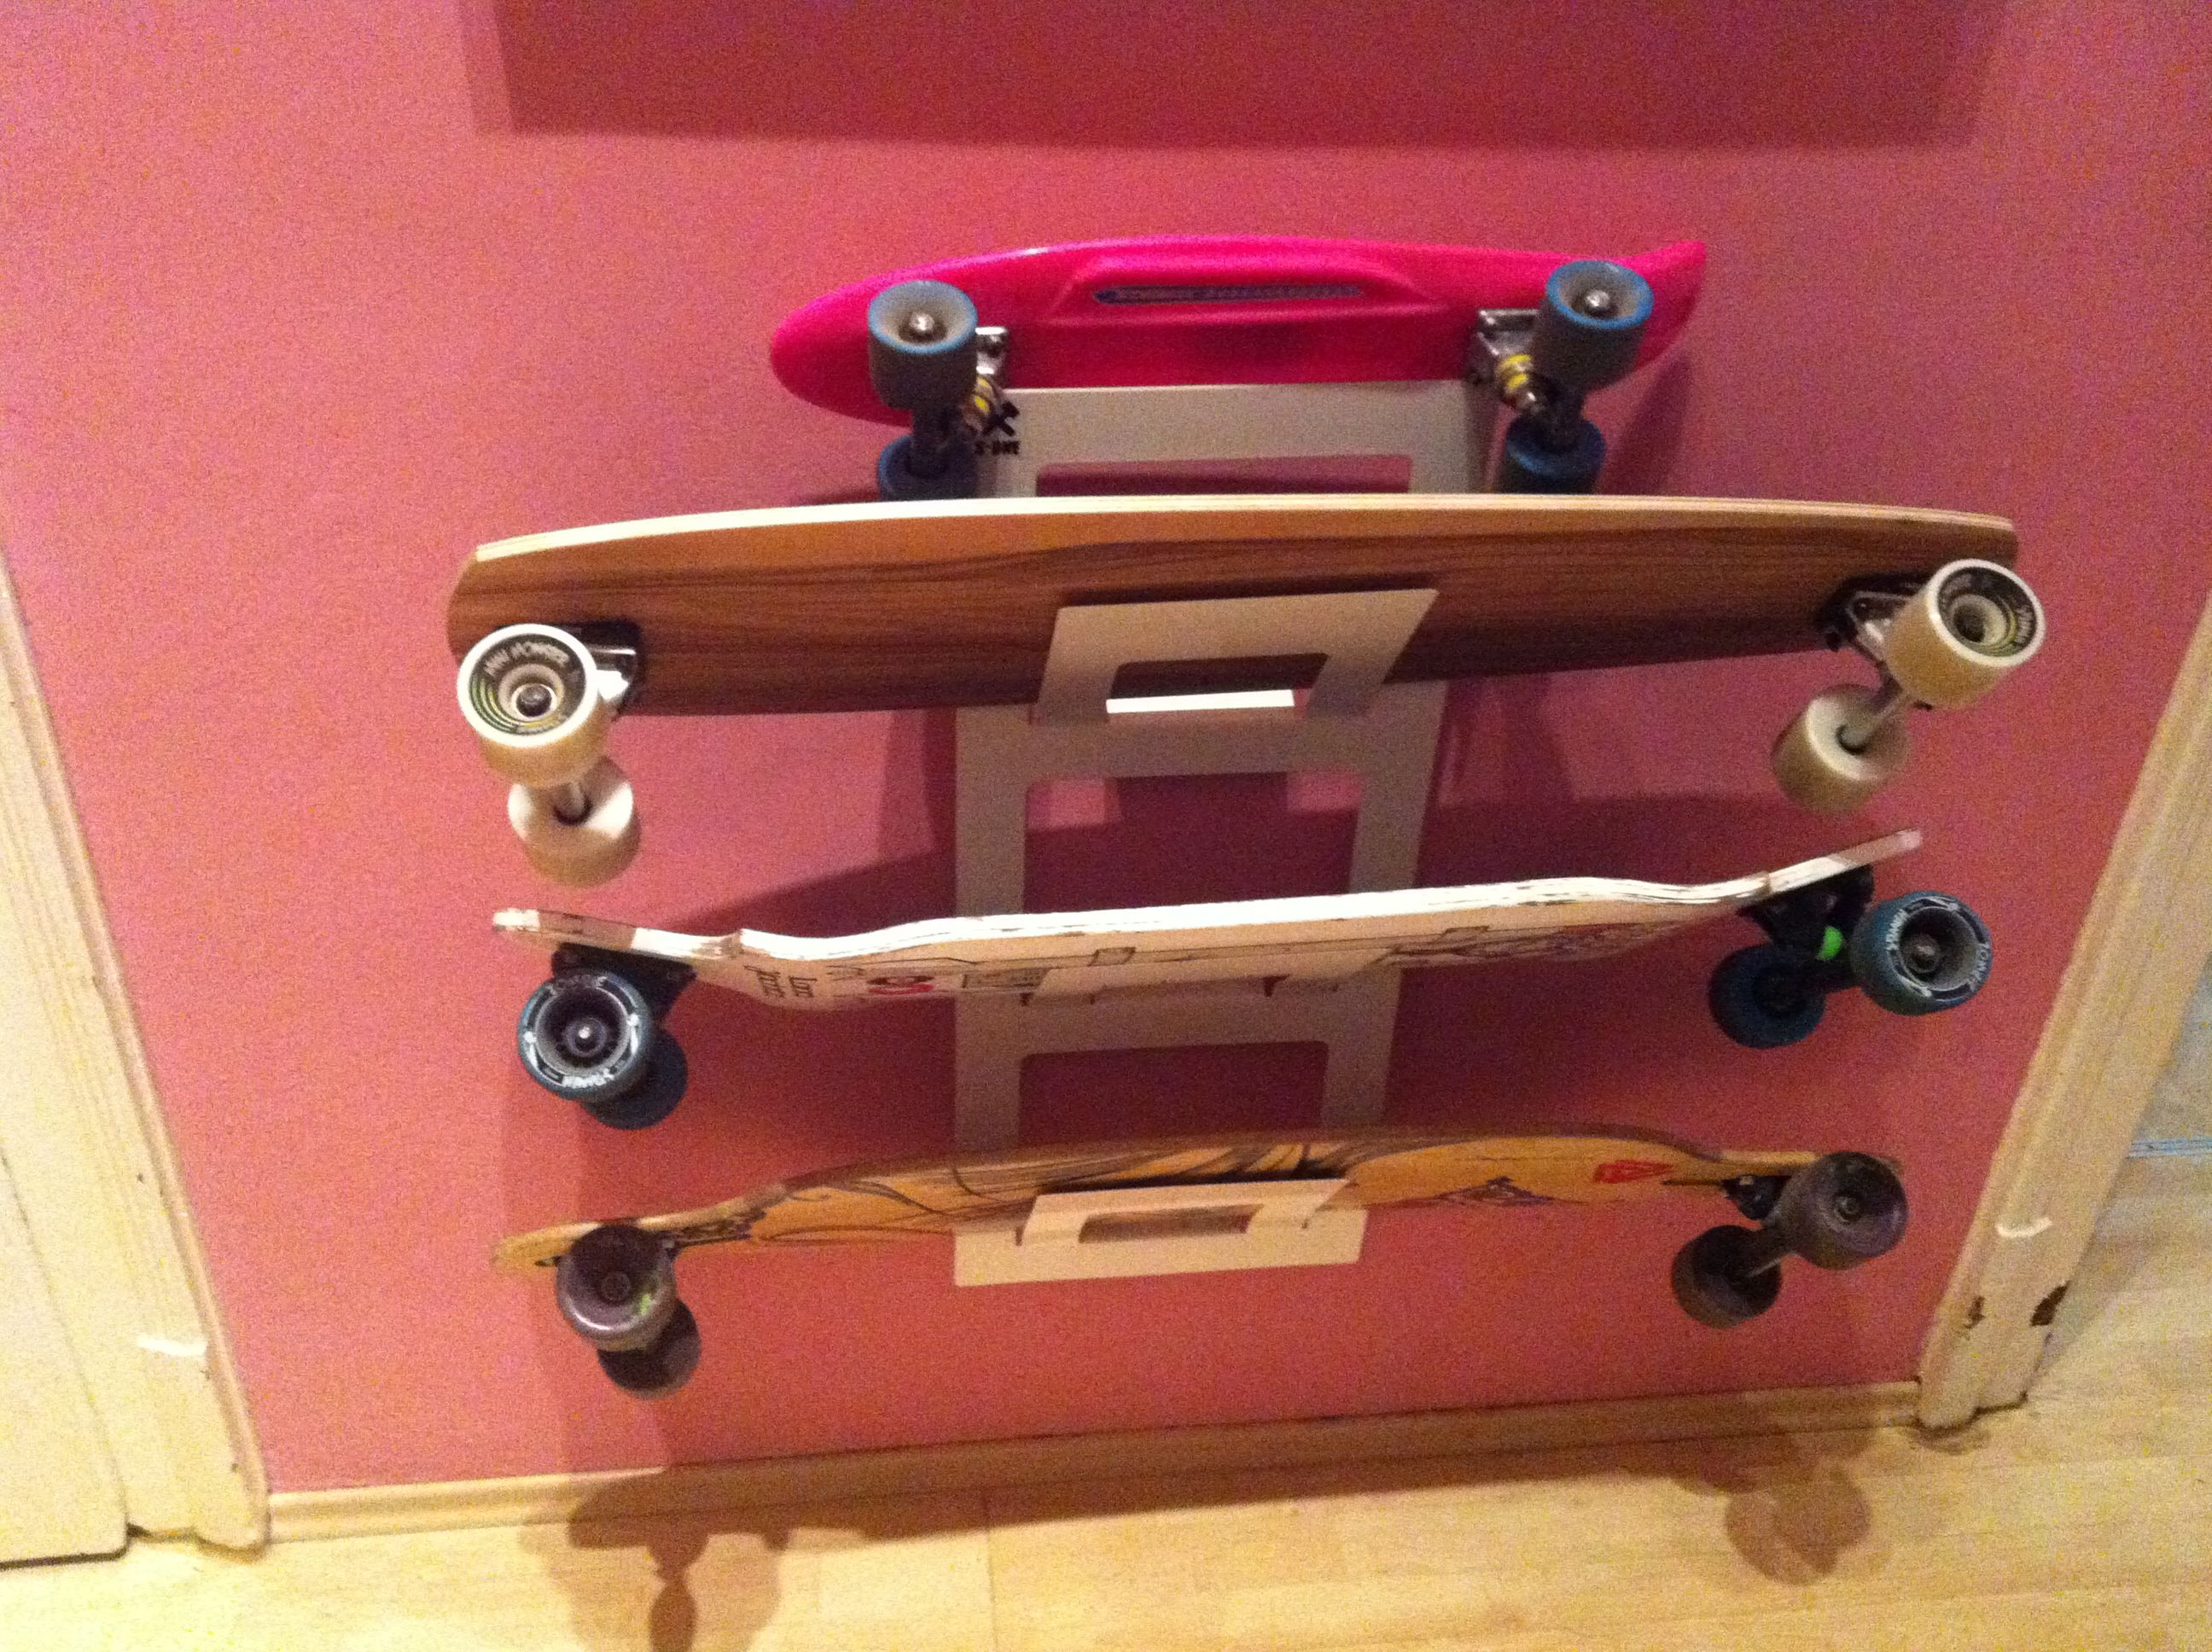 Longboard Möbel My Longboards Products I Love Pinterest Wohnzimmer